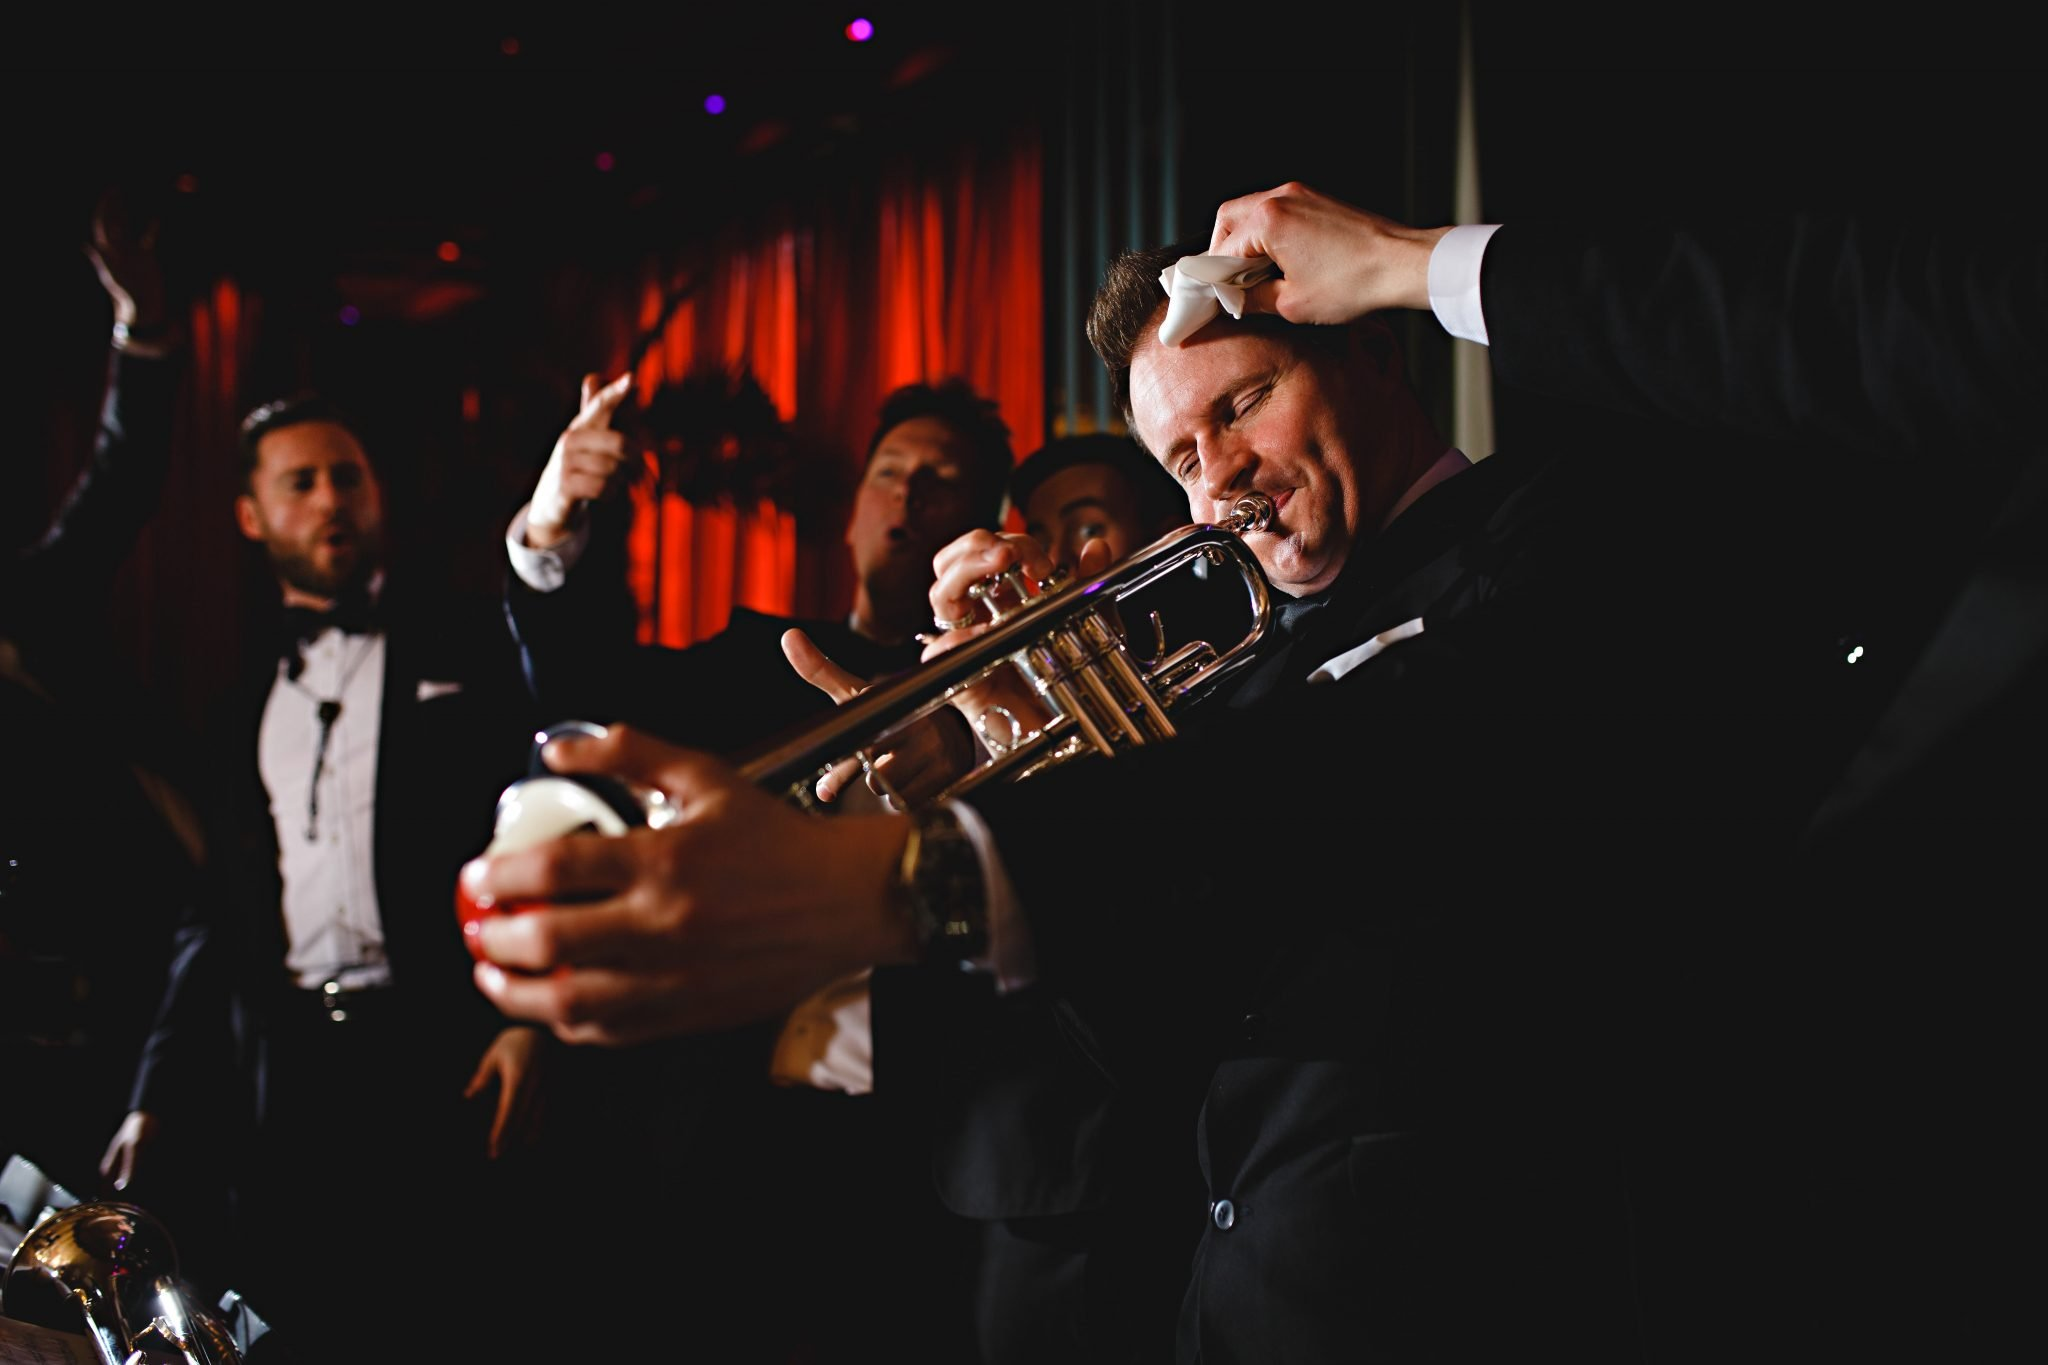 5 Acts for Gin & Jazz Events | Entertainment Ideas for Gin & Jazz Events